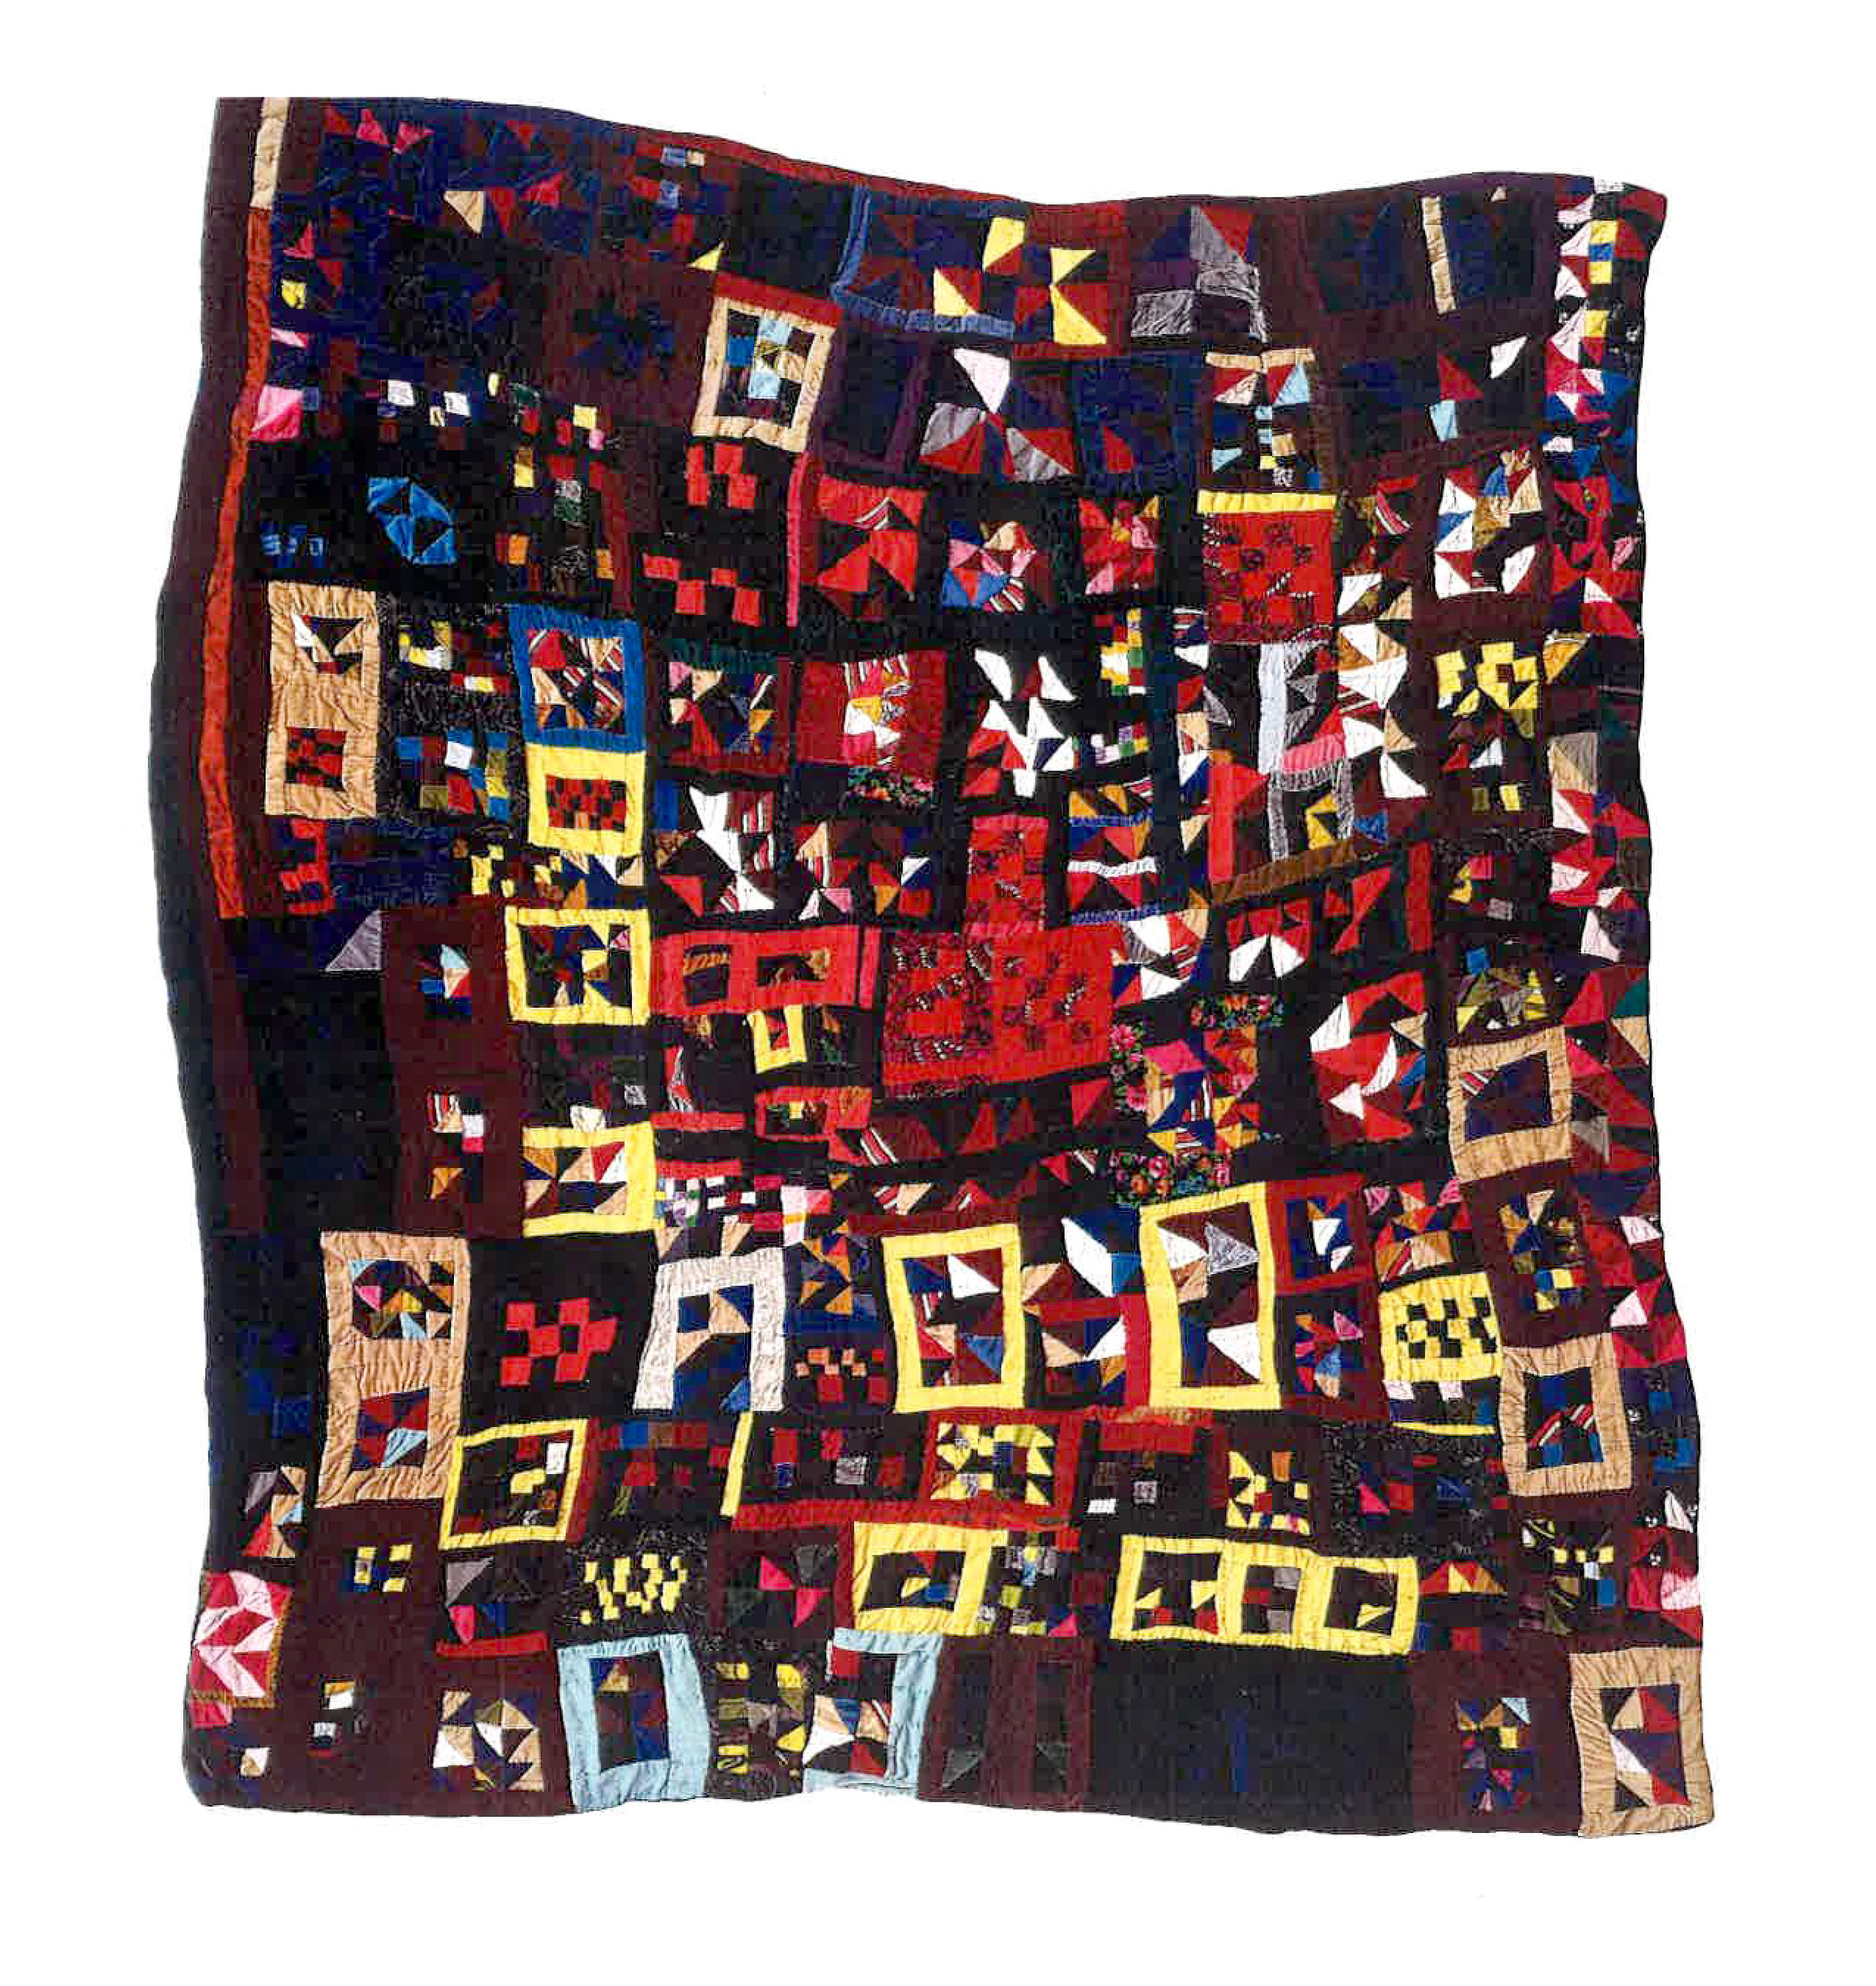 Put-together , pieced by Rosie Lee Tompkins, Richmond, California, 1985. Quilted by Willia Ette Graham, Oakland, California, 1986. Velvet, velveteen, velour, panné velvet, chenille; backed with cotton sheeting, cotton-poly broadcloth. 74 x 82 inches.